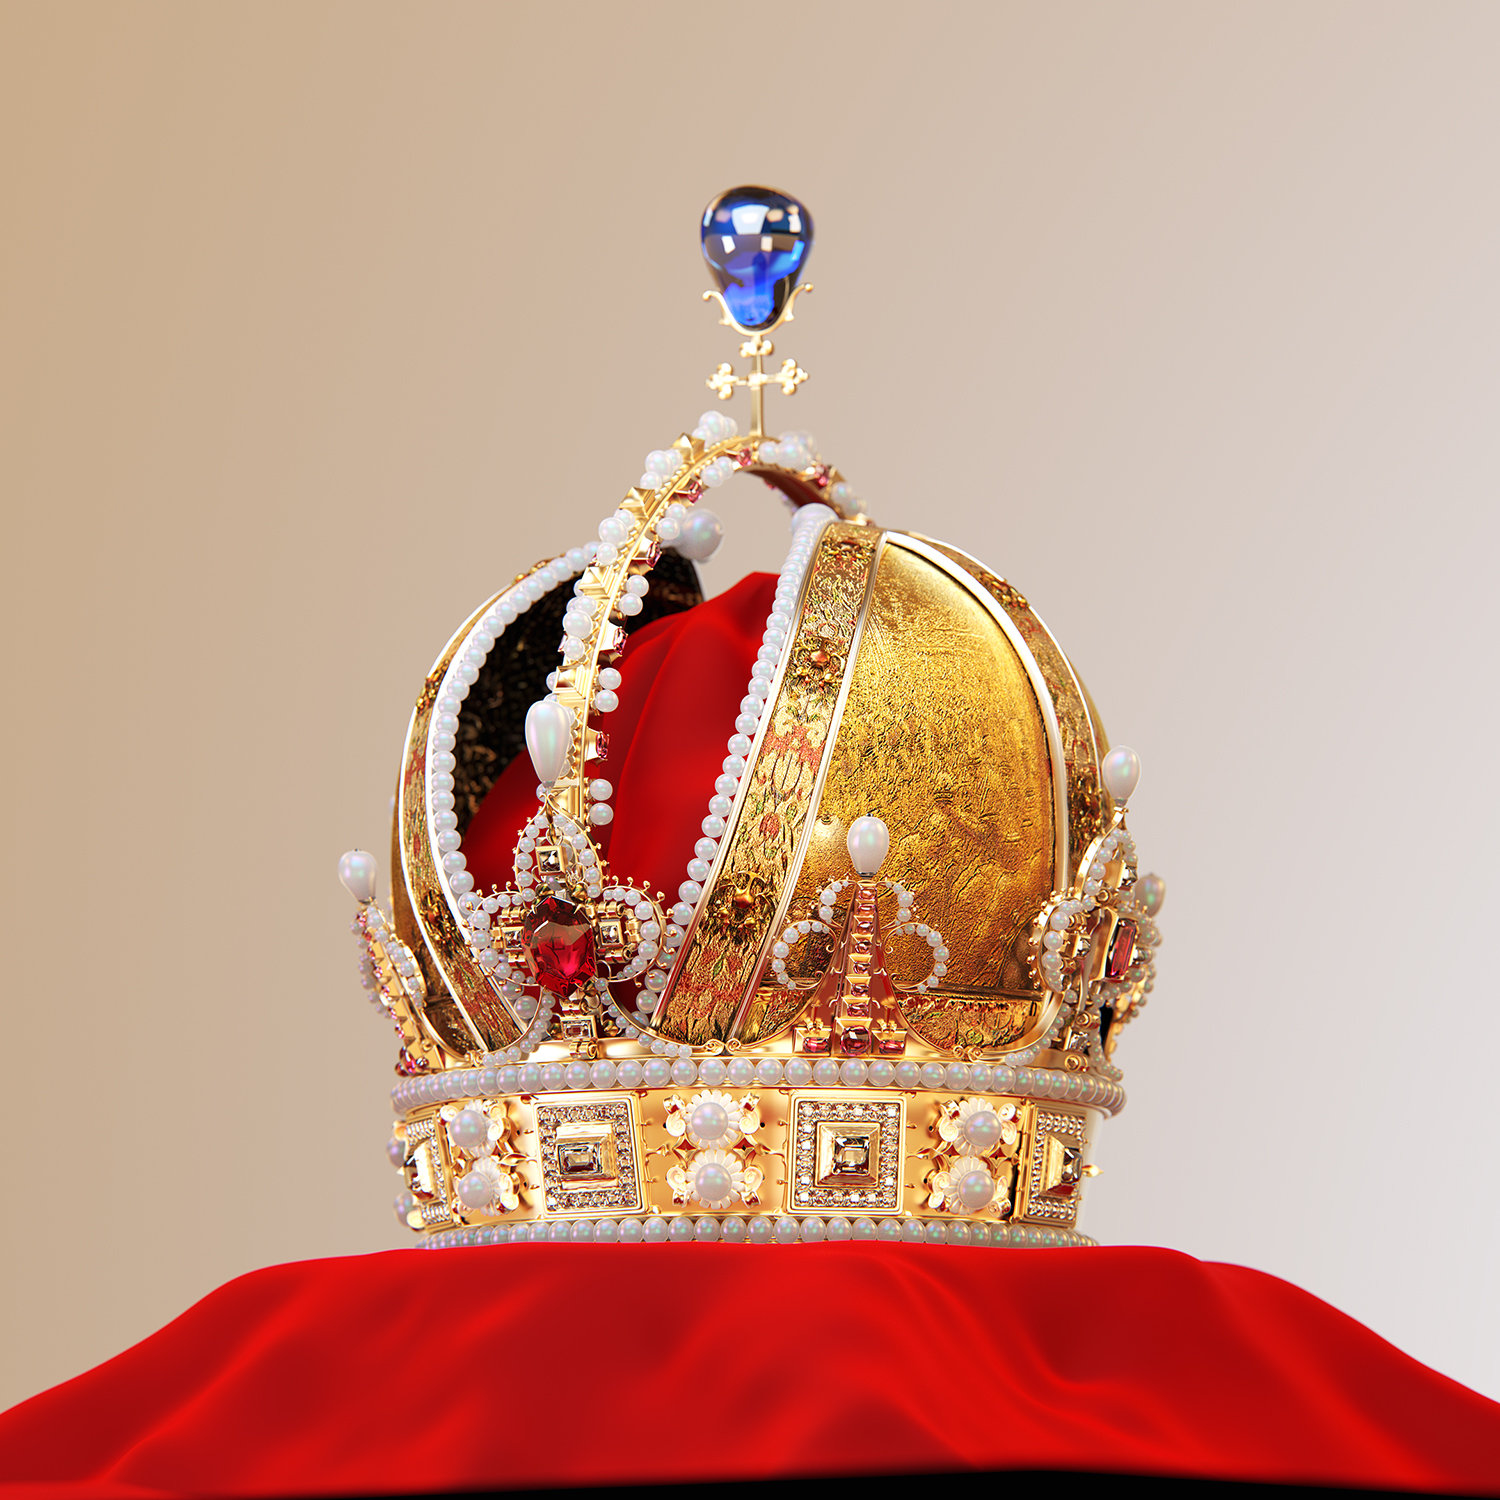 Michael marcondes imperial crown03